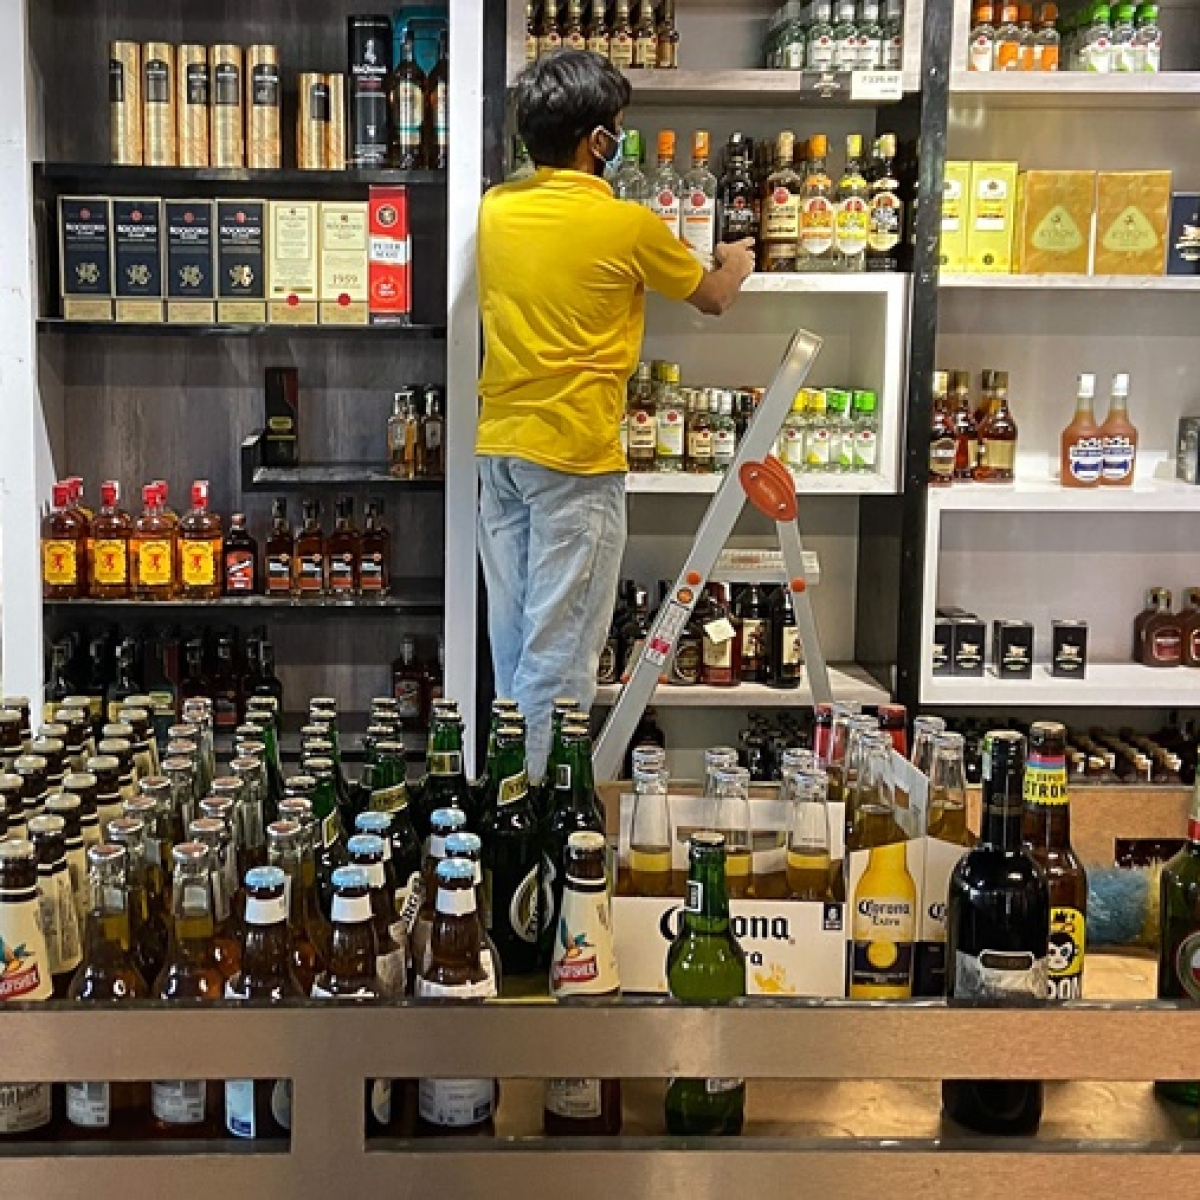 Maha's Excise system considers e-token system to sell liquor - how it will work including pilot basis in Pune